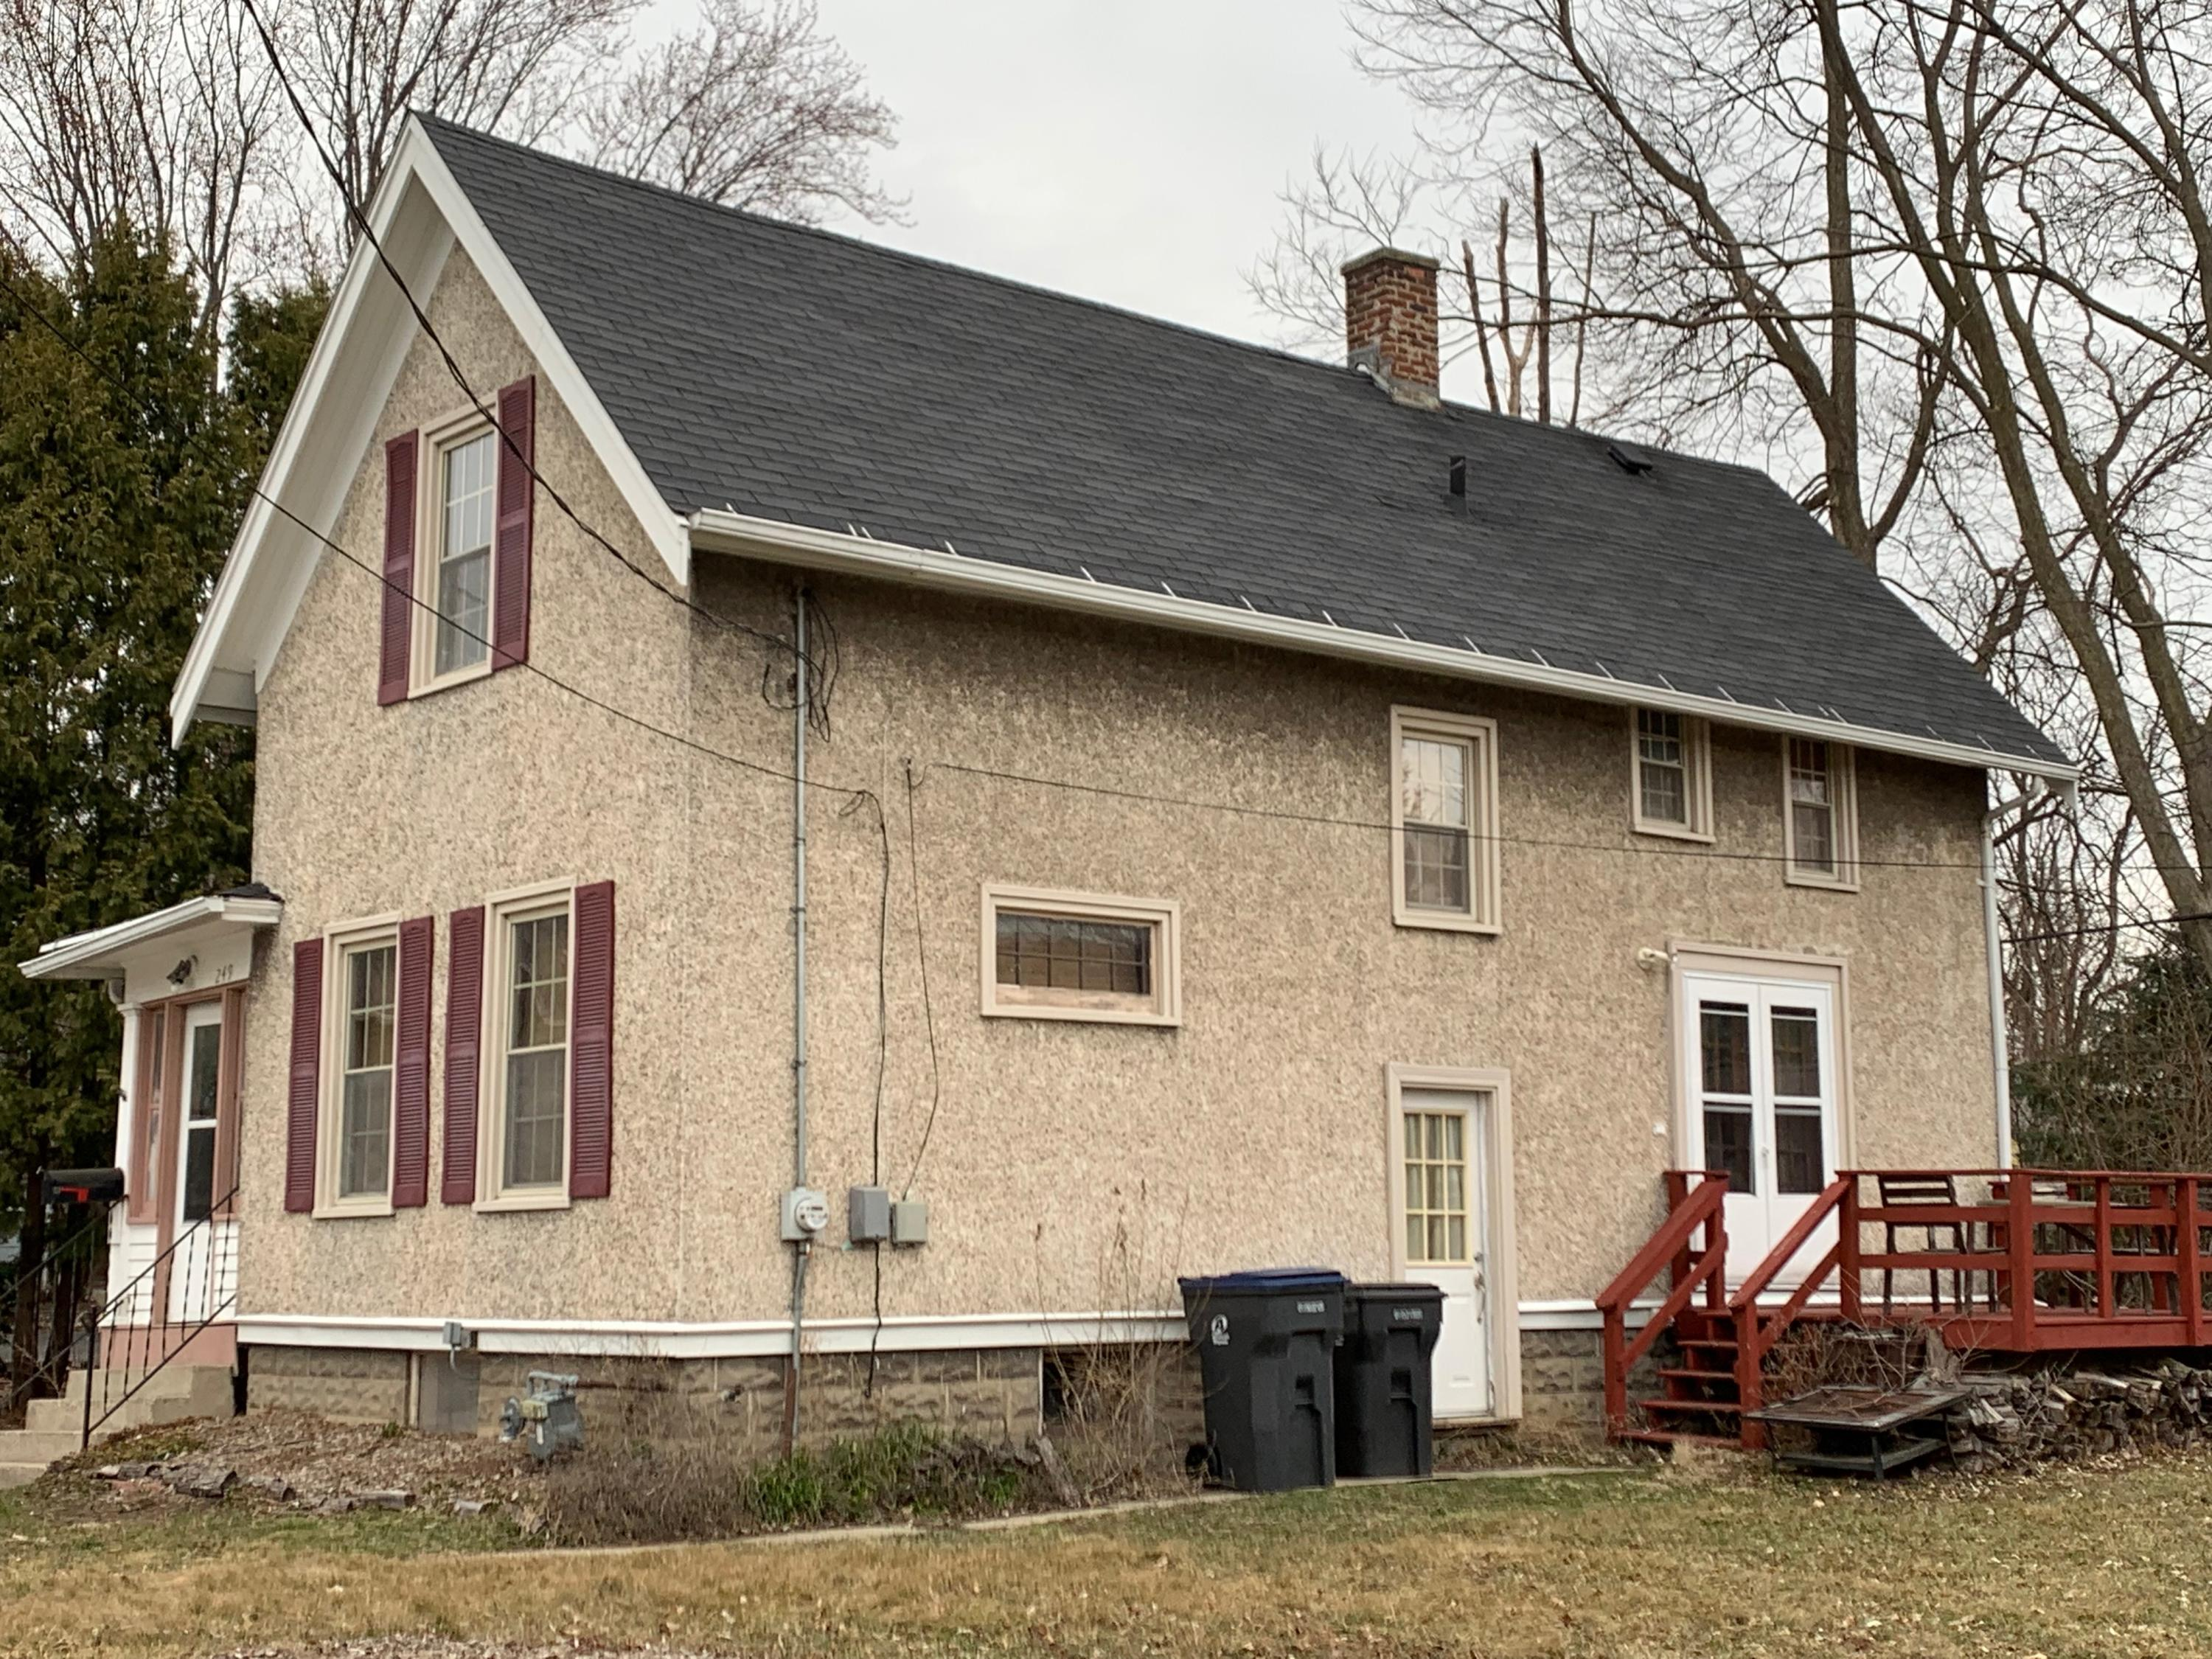 249 Waverly Pl, Waukesha, Wisconsin 53186, 4 Bedrooms Bedrooms, 7 Rooms Rooms,1 BathroomBathrooms,Single-Family,For Sale,Waverly Pl,1631840